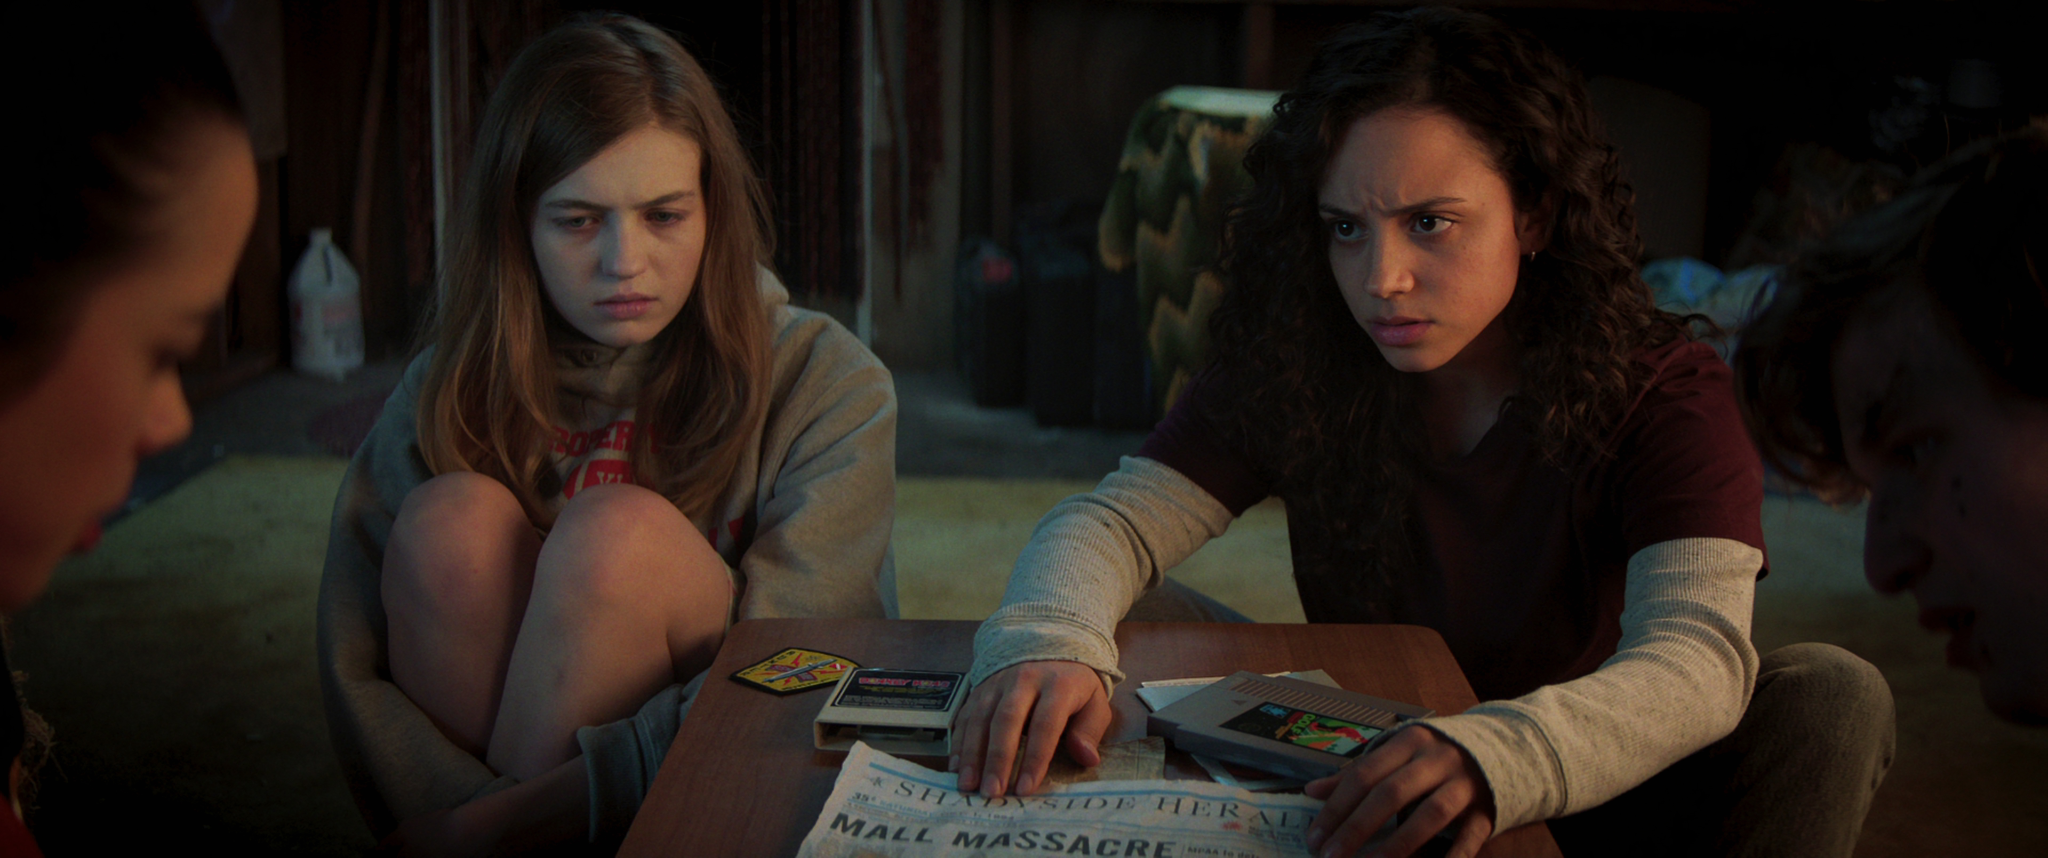 Still from Fear Street part 1. Sam and Deena sit on the floor, as Deena pushes a newspaper headline across the table to another friend, mostly out of the frame. Sam hugs her knees, looking afraid, and Deena seems concerned.